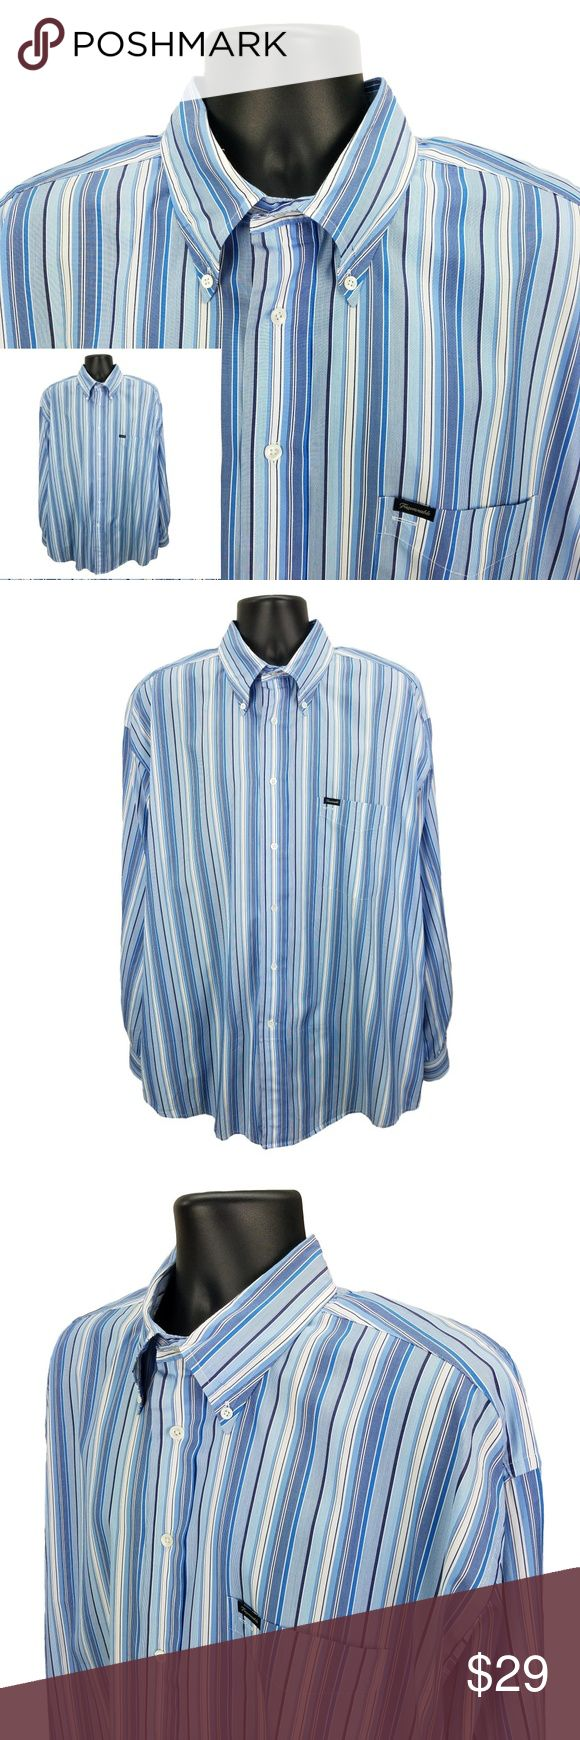 """Faconnable Relaxed Fit Button Up Shirt Men's XXL Men's Faconnable - Relaxed Fit - Button Front Shirt         ( BFL-3 )  Made of 100% Cotton  Sleeve Length =  Long  Size = XXL, 2XL  Color = Blue Stripe  Measures: 25"""" Pit to Pit  35"""" Long from Bottom of Collar to Tail  36"""" Sleeves Faconnable Shirts Casual Button Down Shirts"""